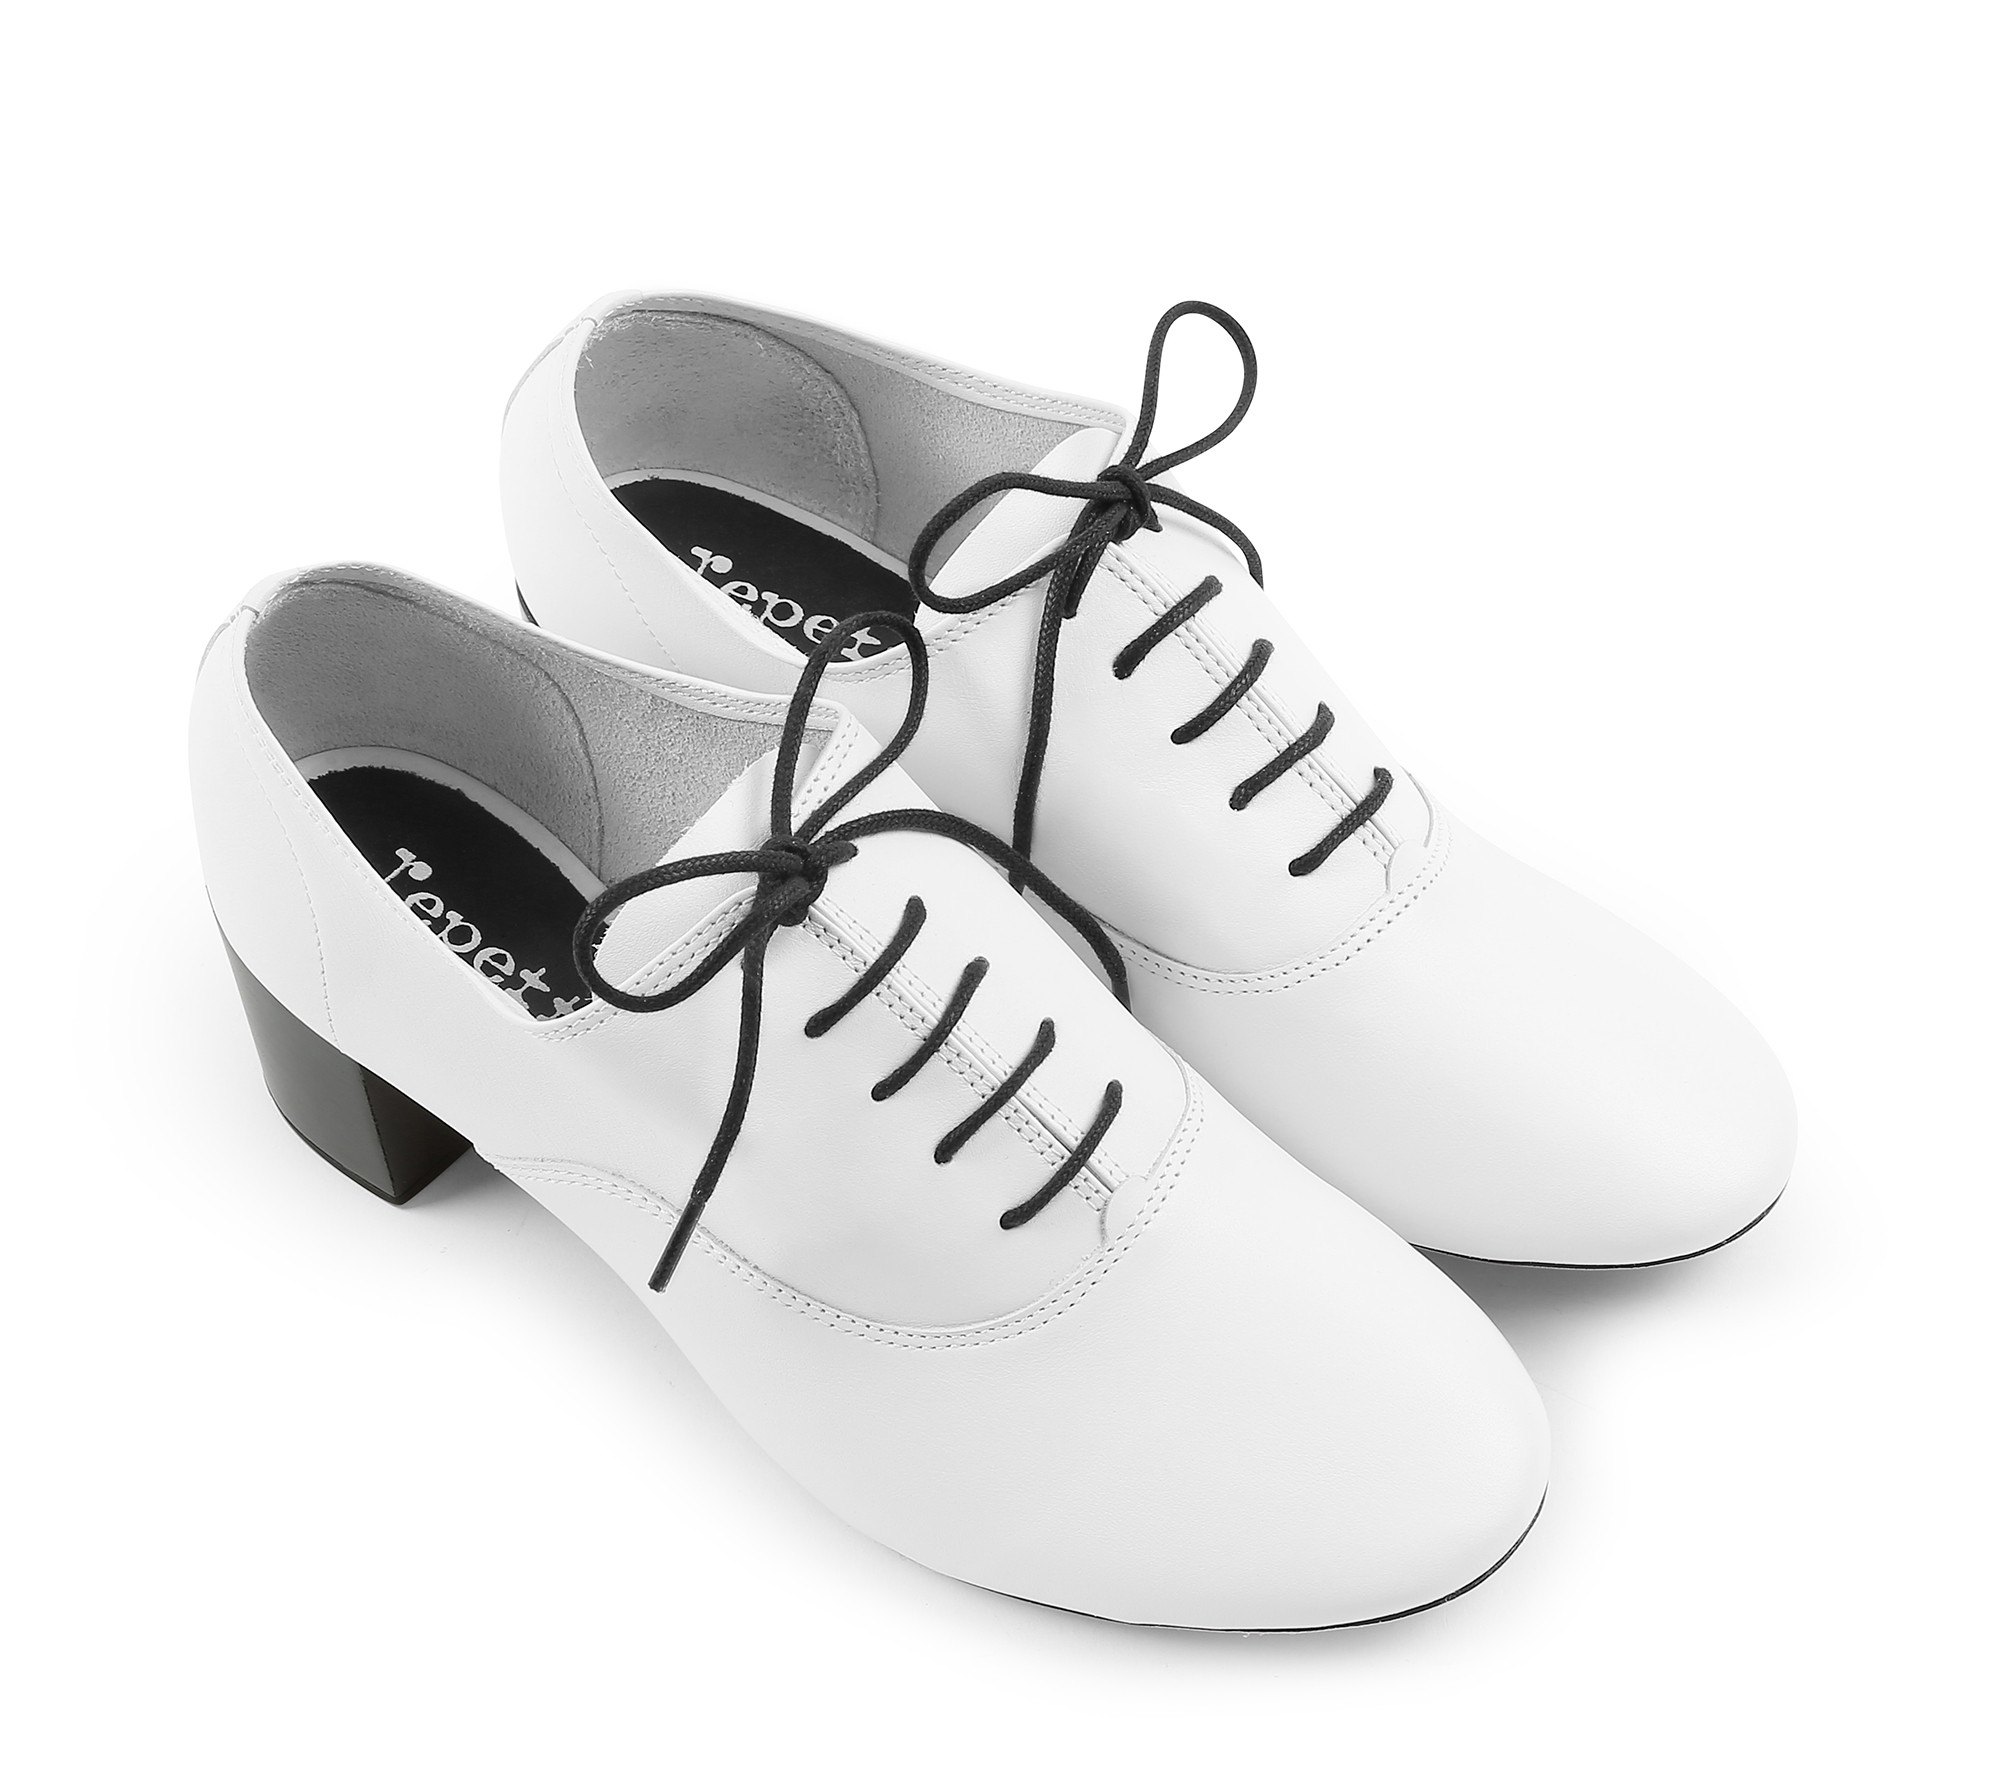 Fado oxford shoes